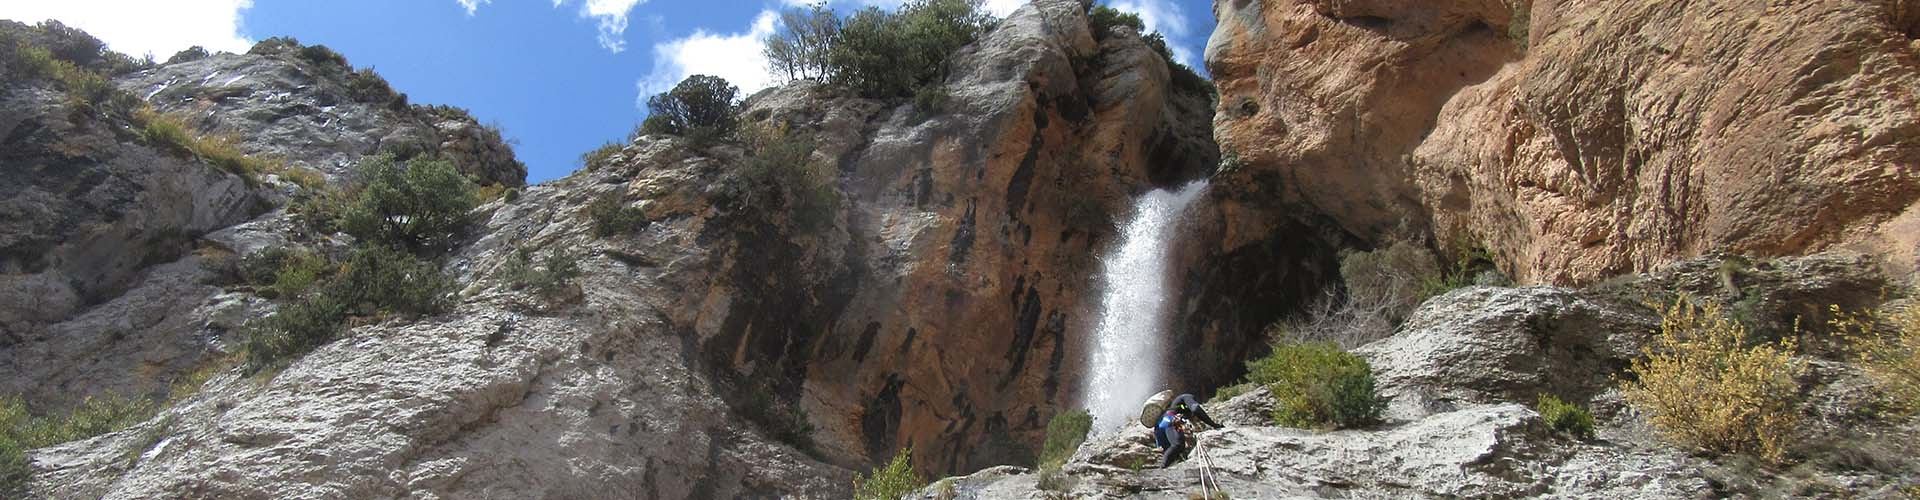 barranco de otin con guaranatura